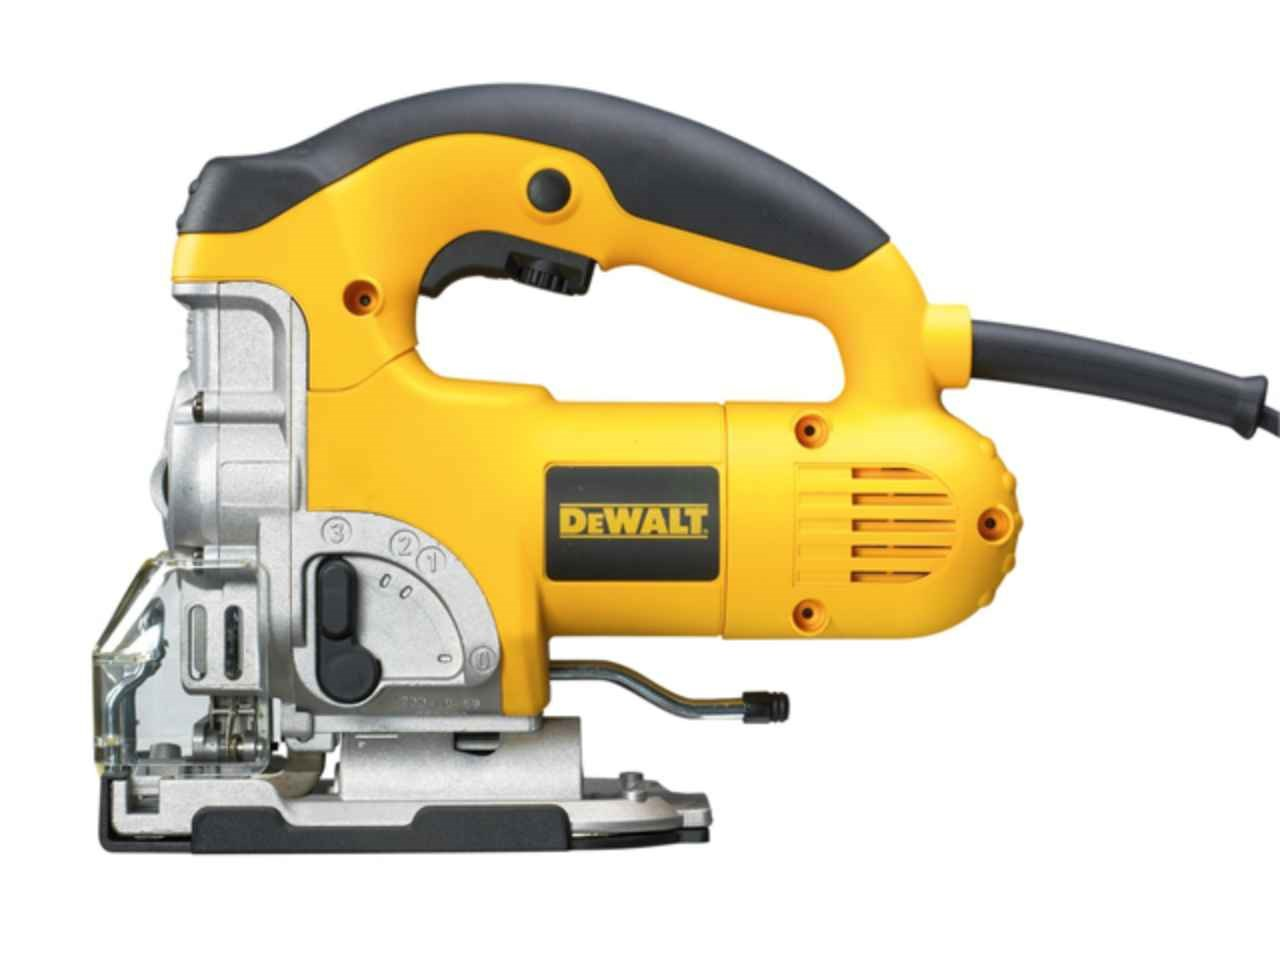 Dewalt dw331kt 230v 701w jigsaw with t stak greentooth Images